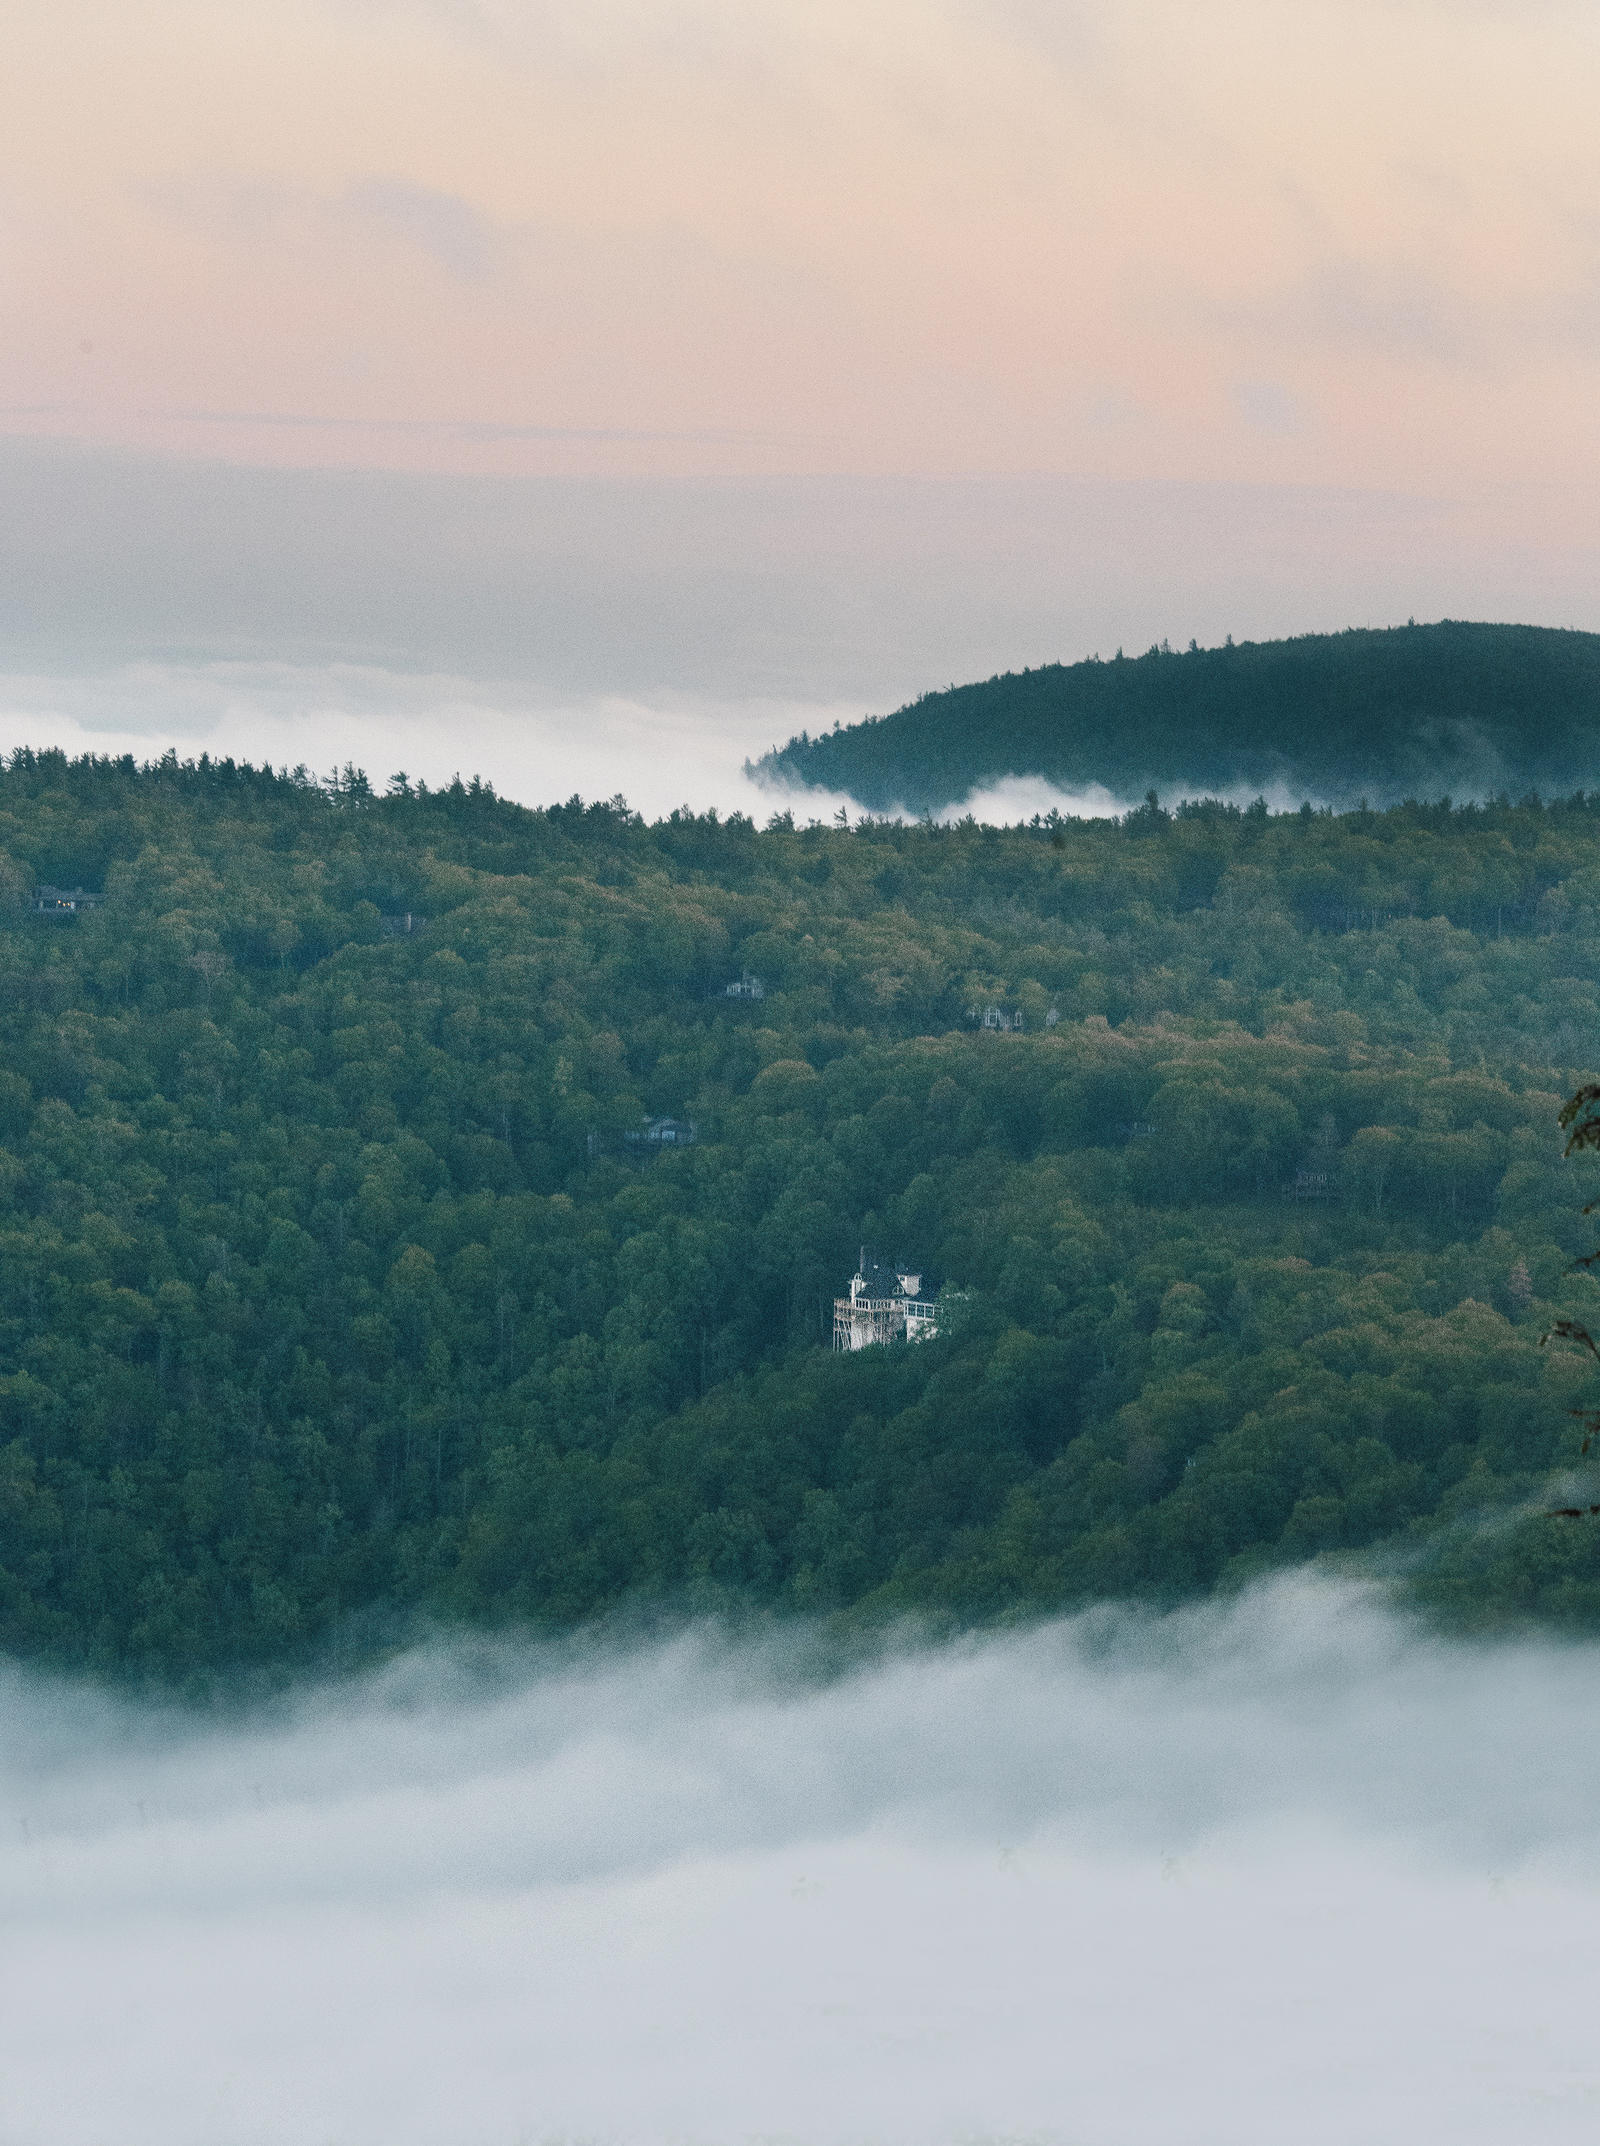 Lifestyle Photography | Atlanta, GA | A large hotel sits in a vast, wooded forest. Fog rolls into the valley.